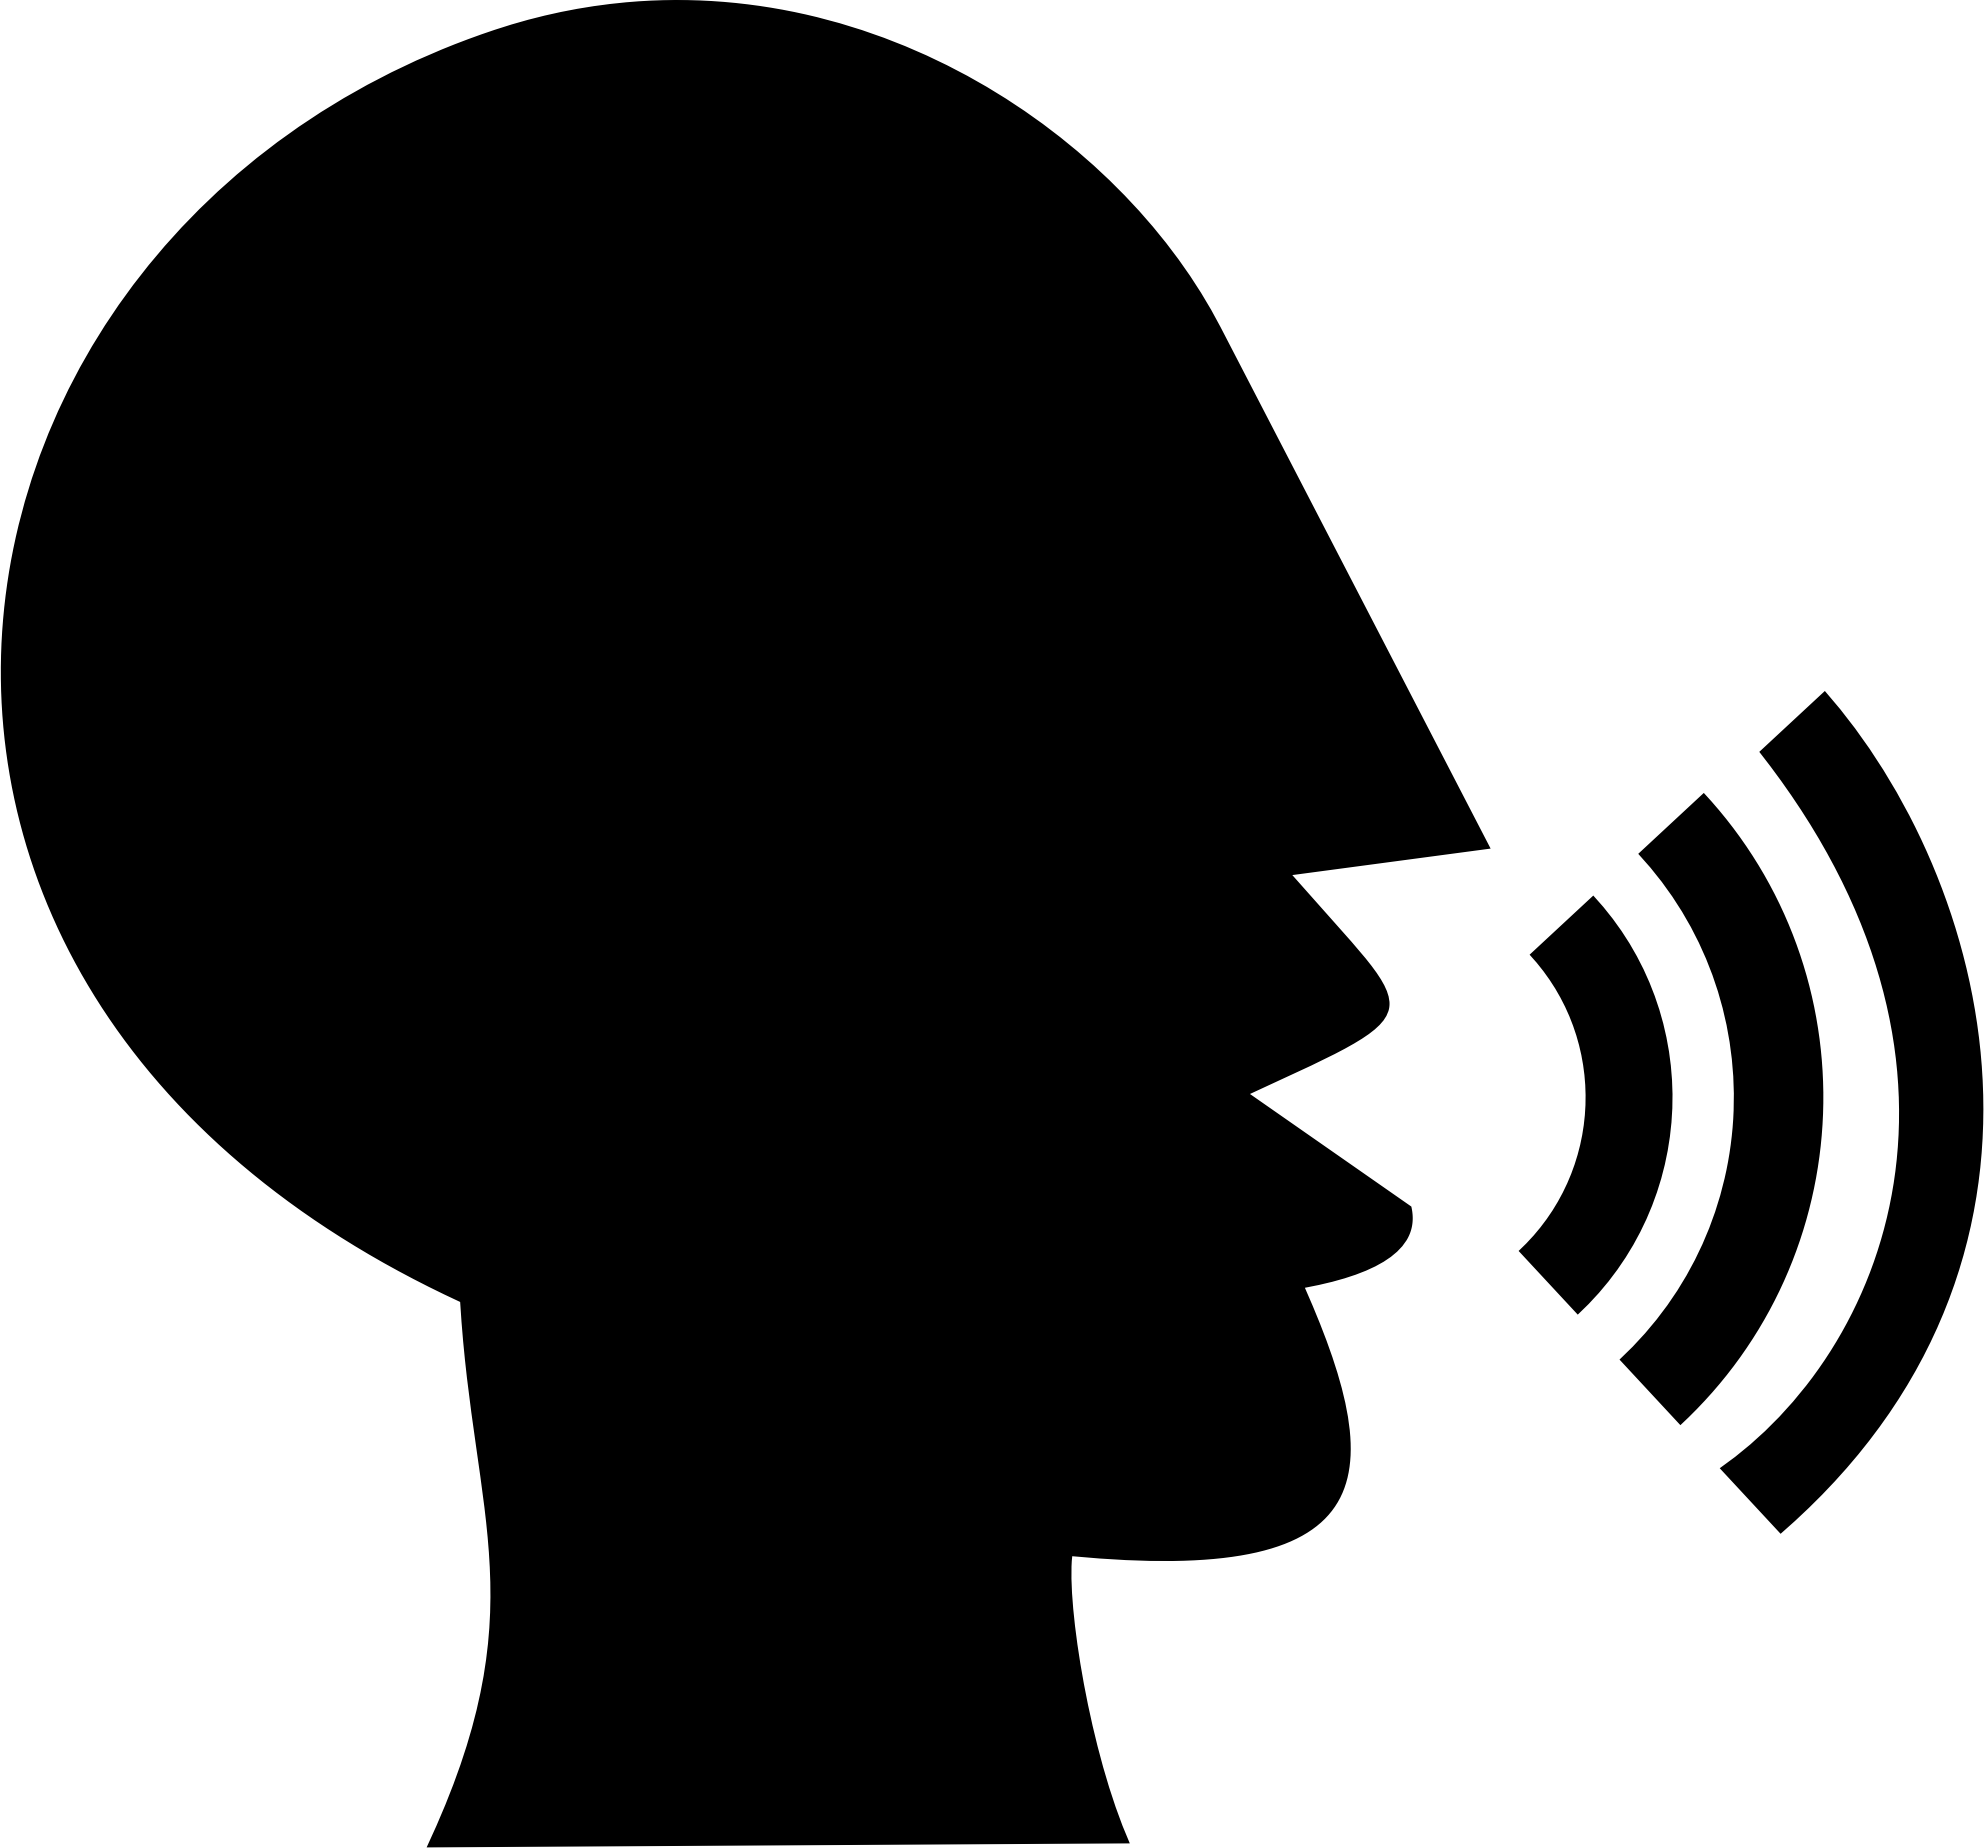 talking-head-silhouette-vector-clipart